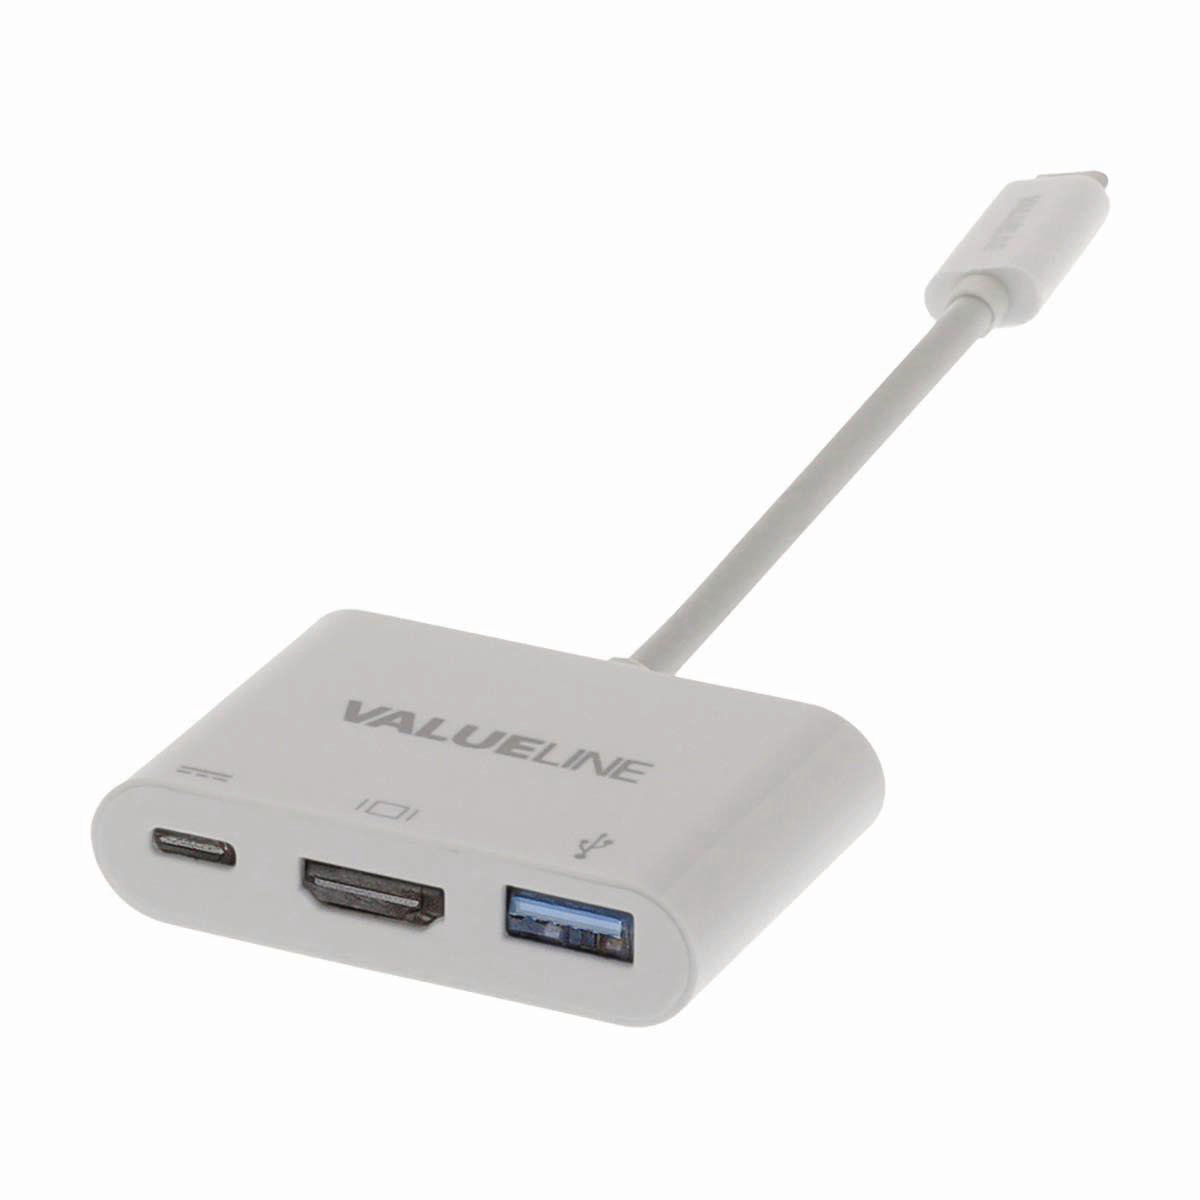 USB-C Type-C Adapter Type-C Male to USB A Female, Type-C Female, HDMI Out White